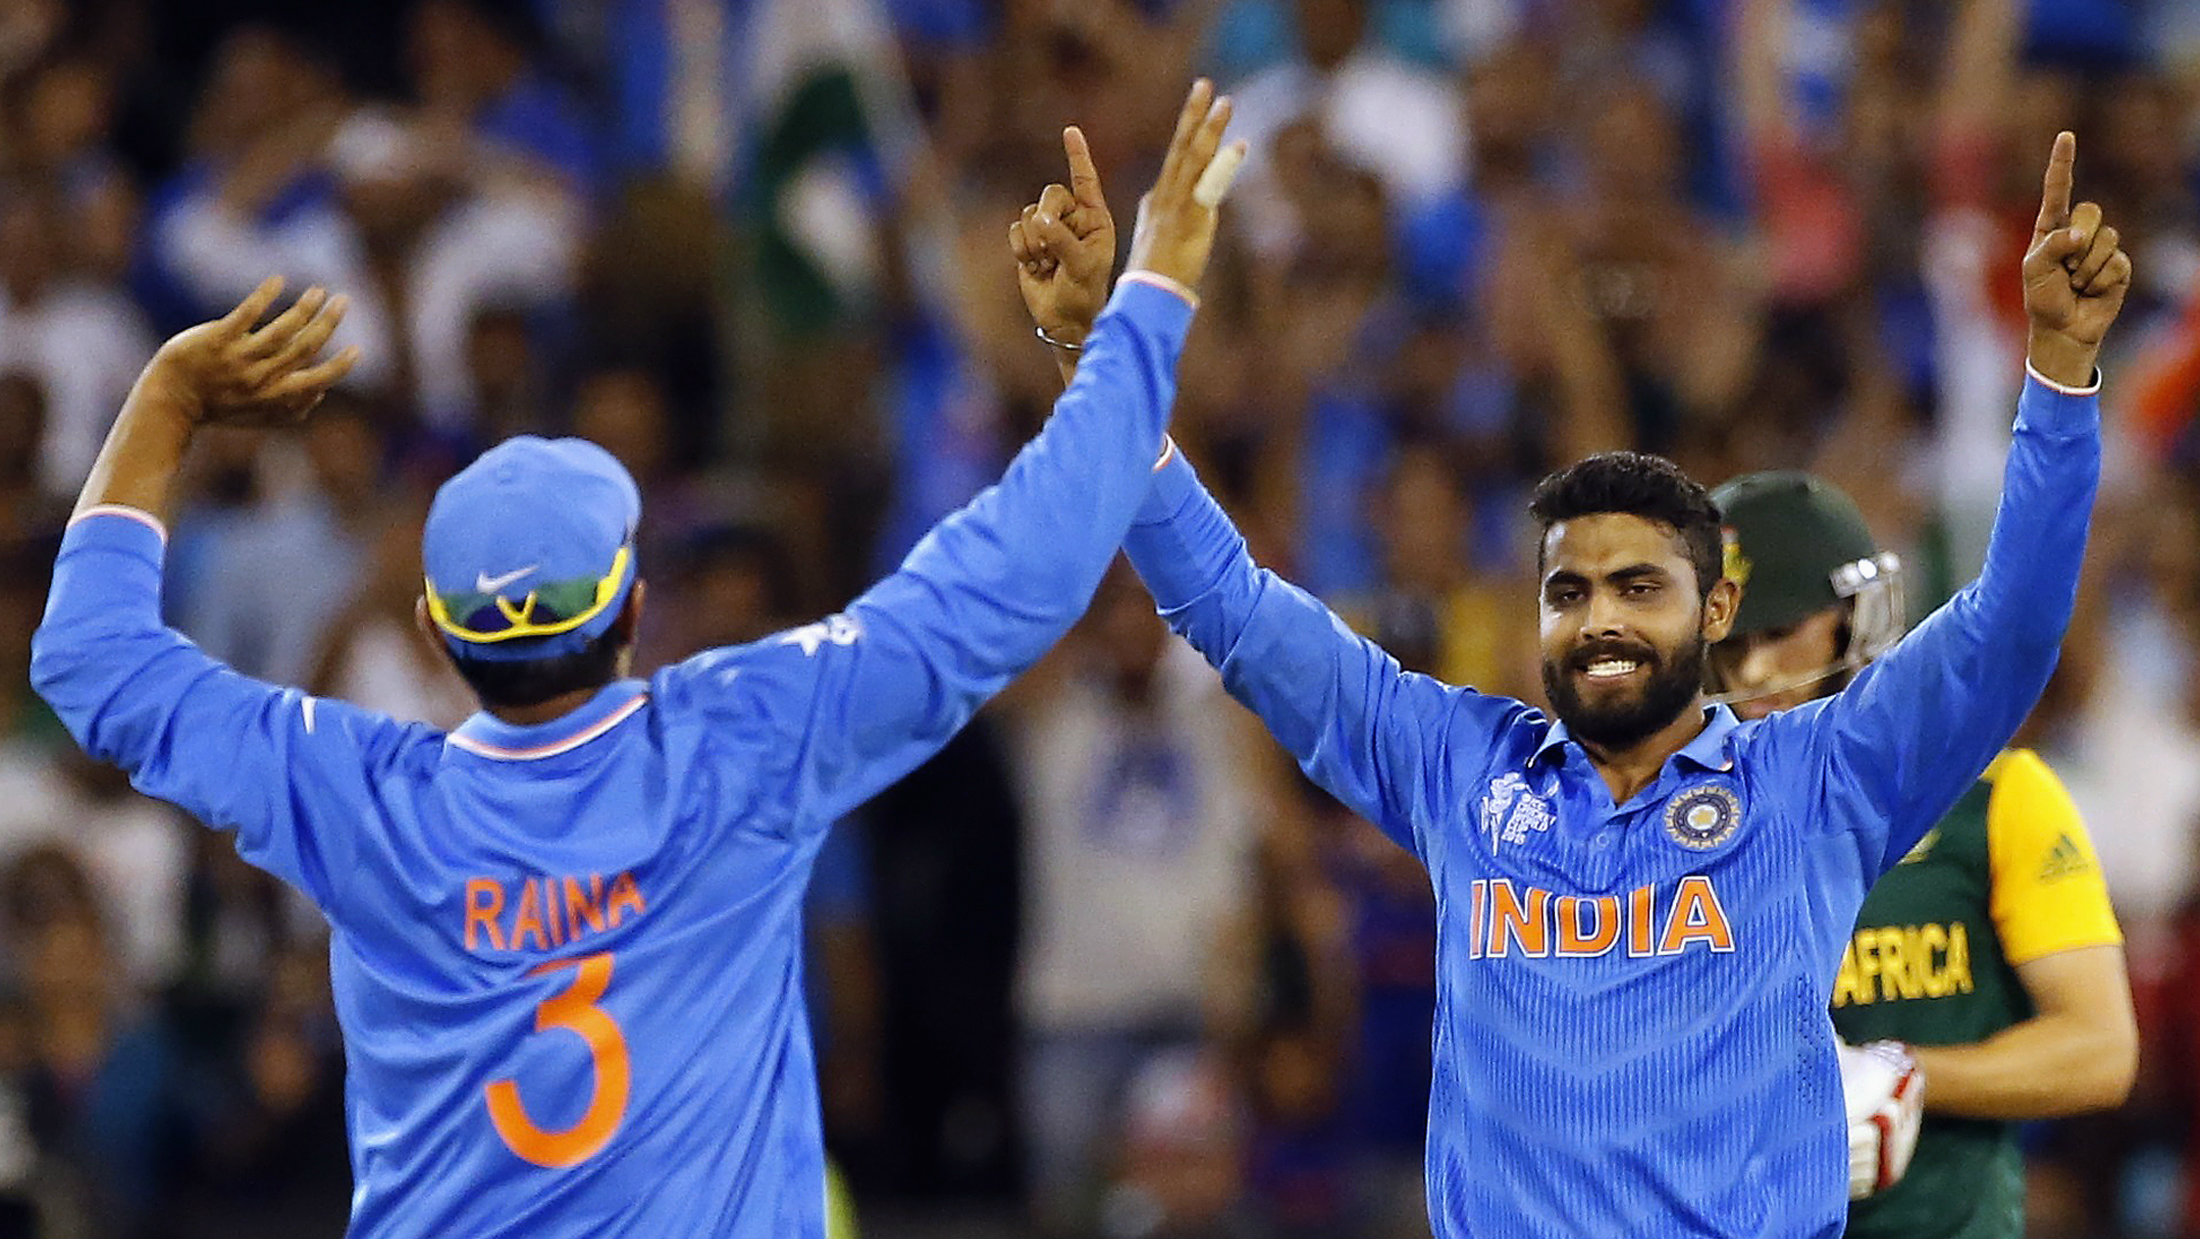 South Africa's Parnell reacts as India's Jadeja and Raina celebrate winning their Cricket World Cup match.